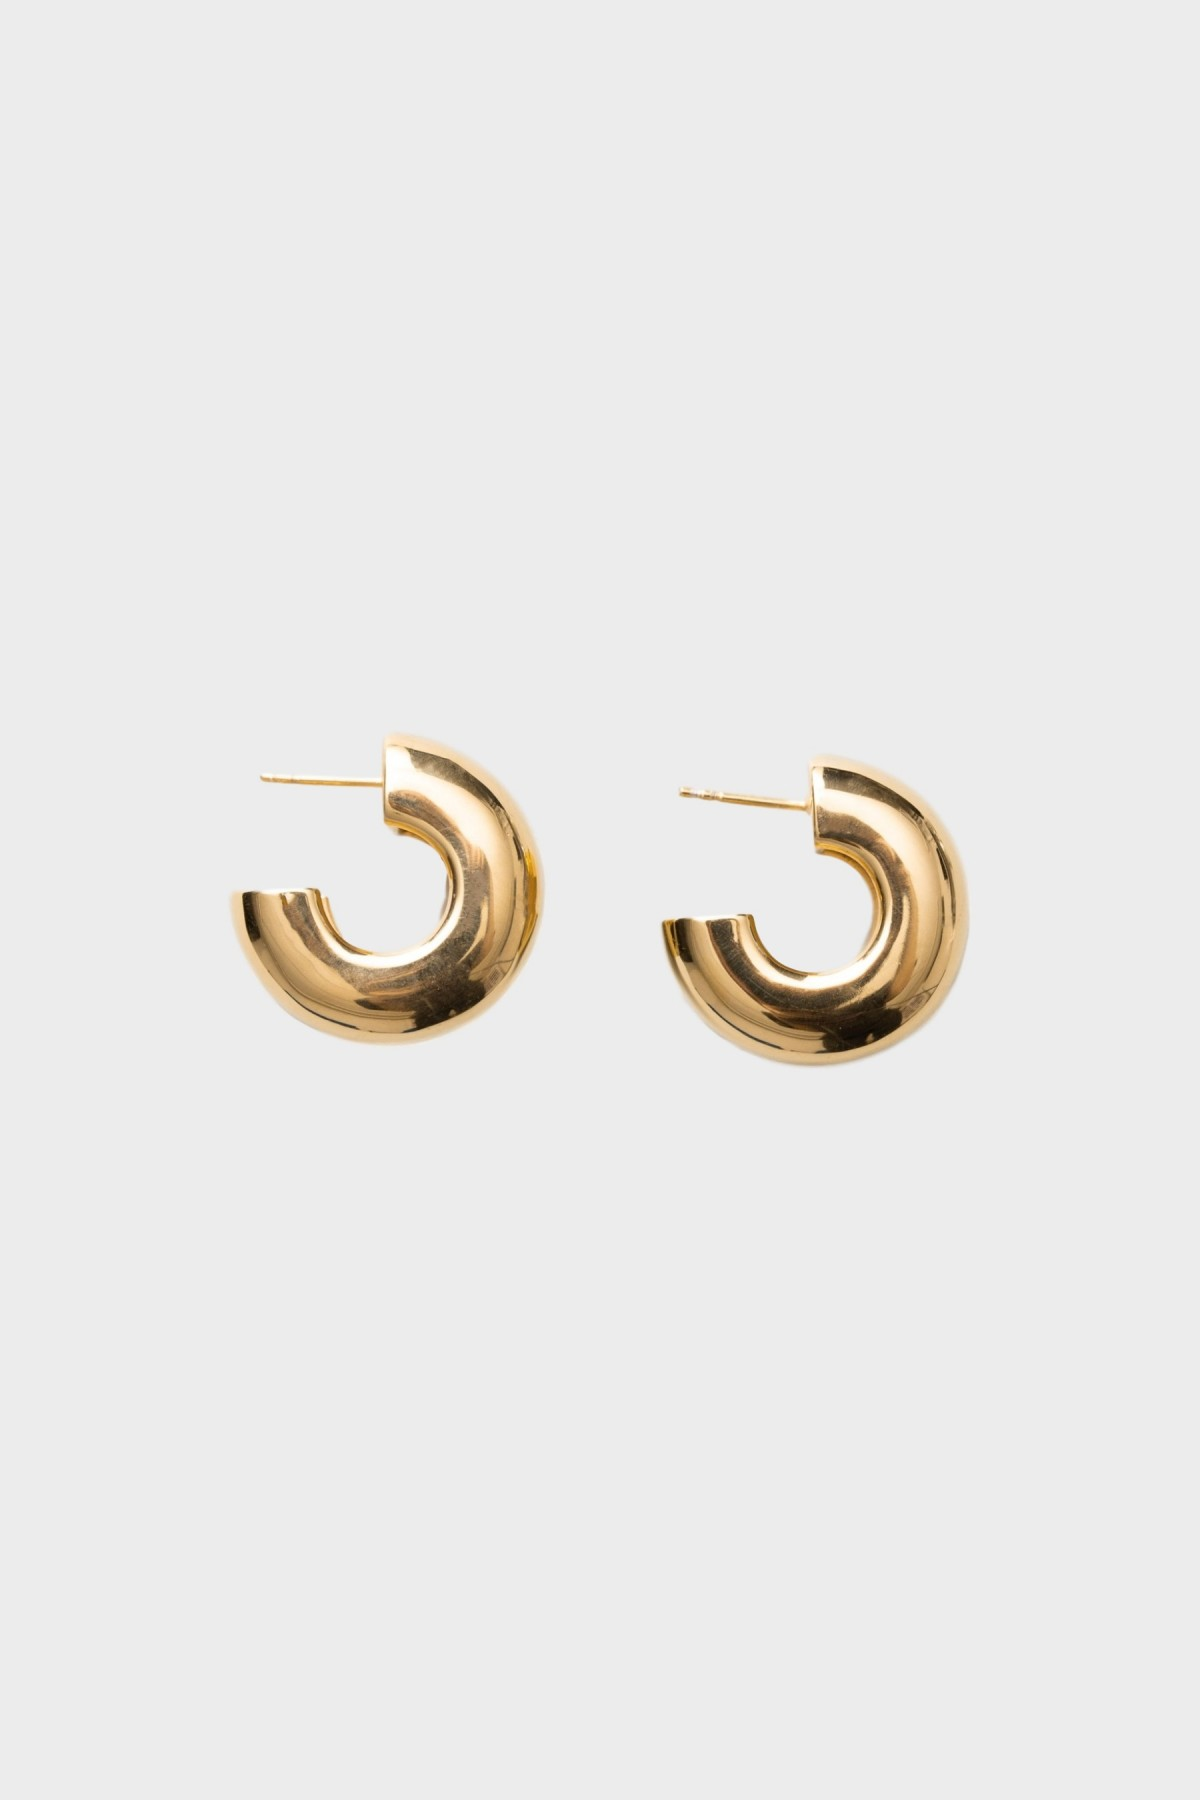 All Blues  Tire Earrings in Polished Gold Vermeil